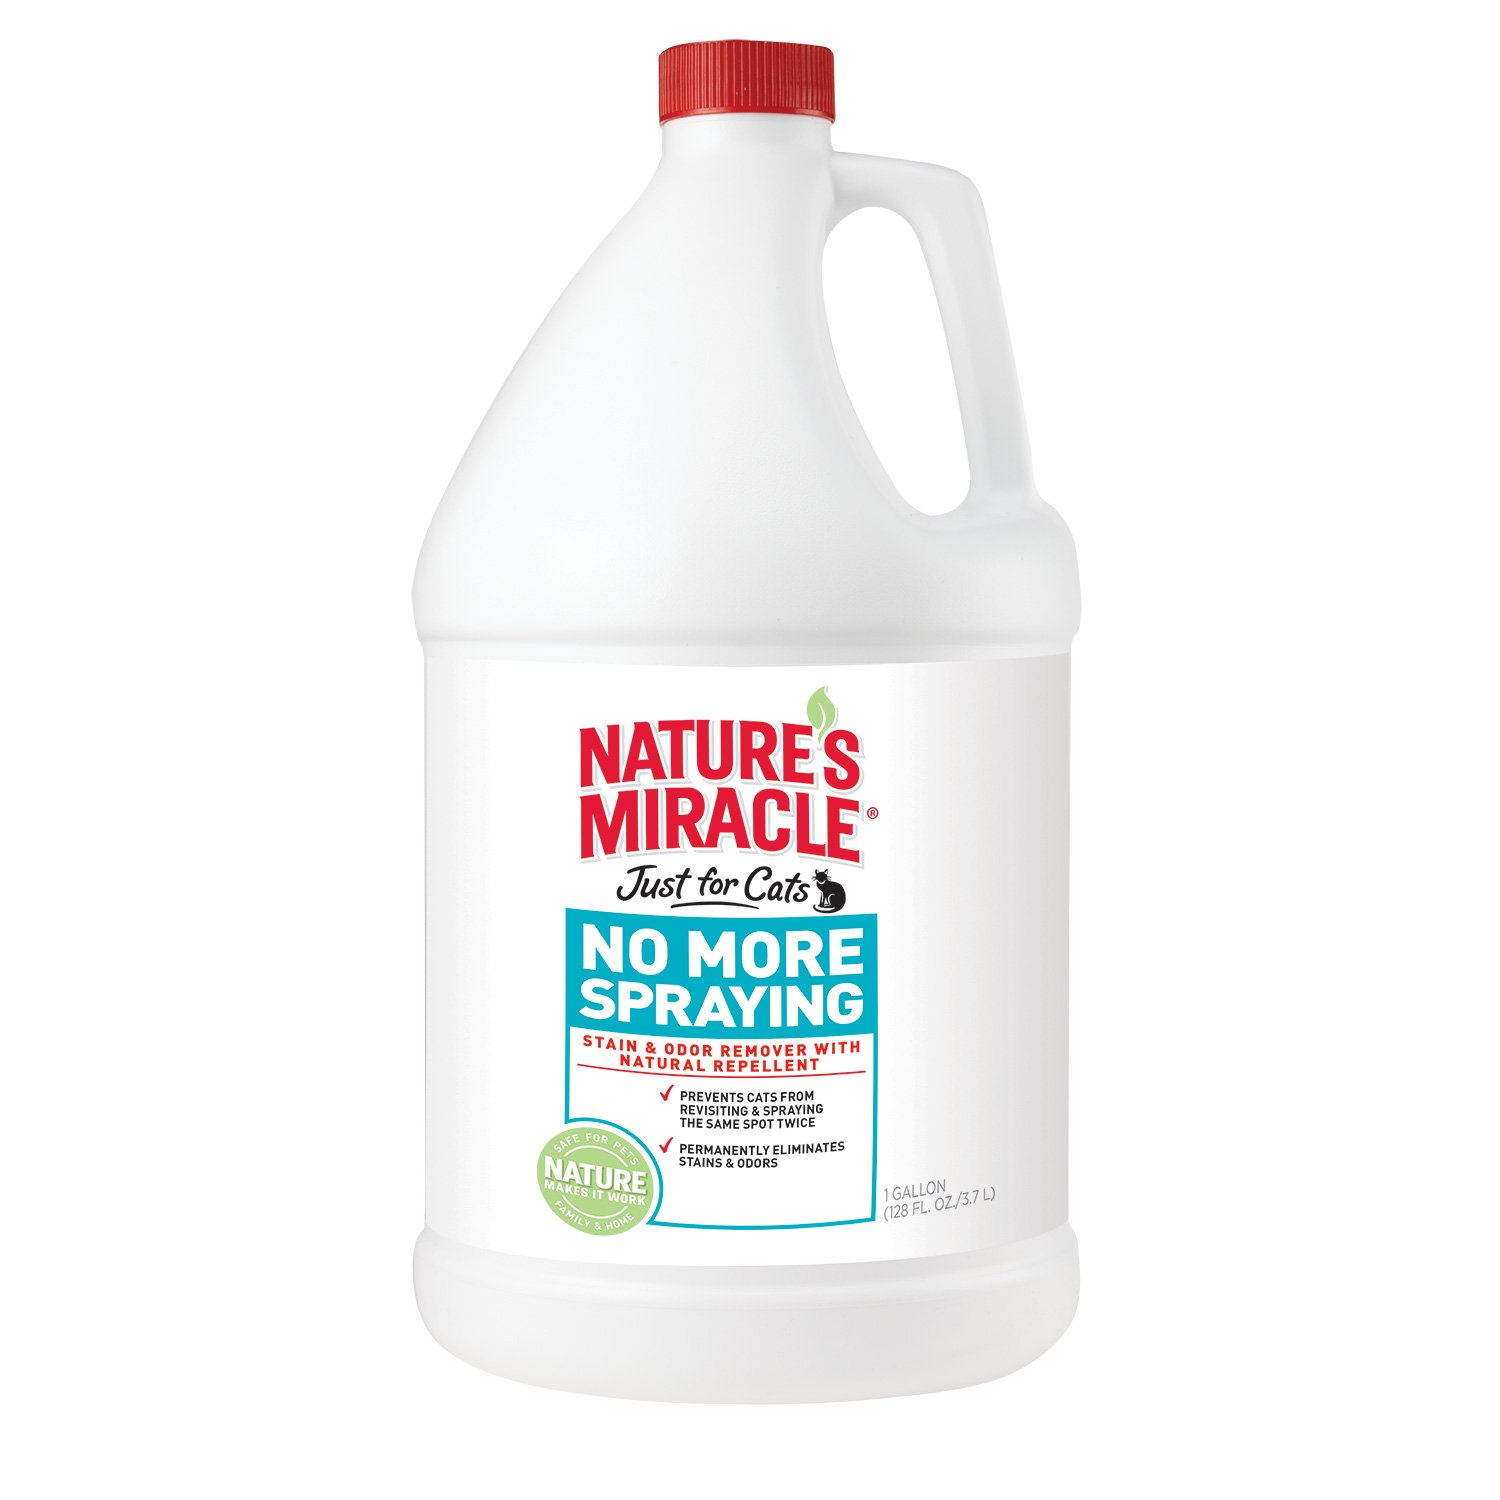 Nature's Miracle No More Spraying, Stain And Odor Remover, Repellent by Nature's Miracle